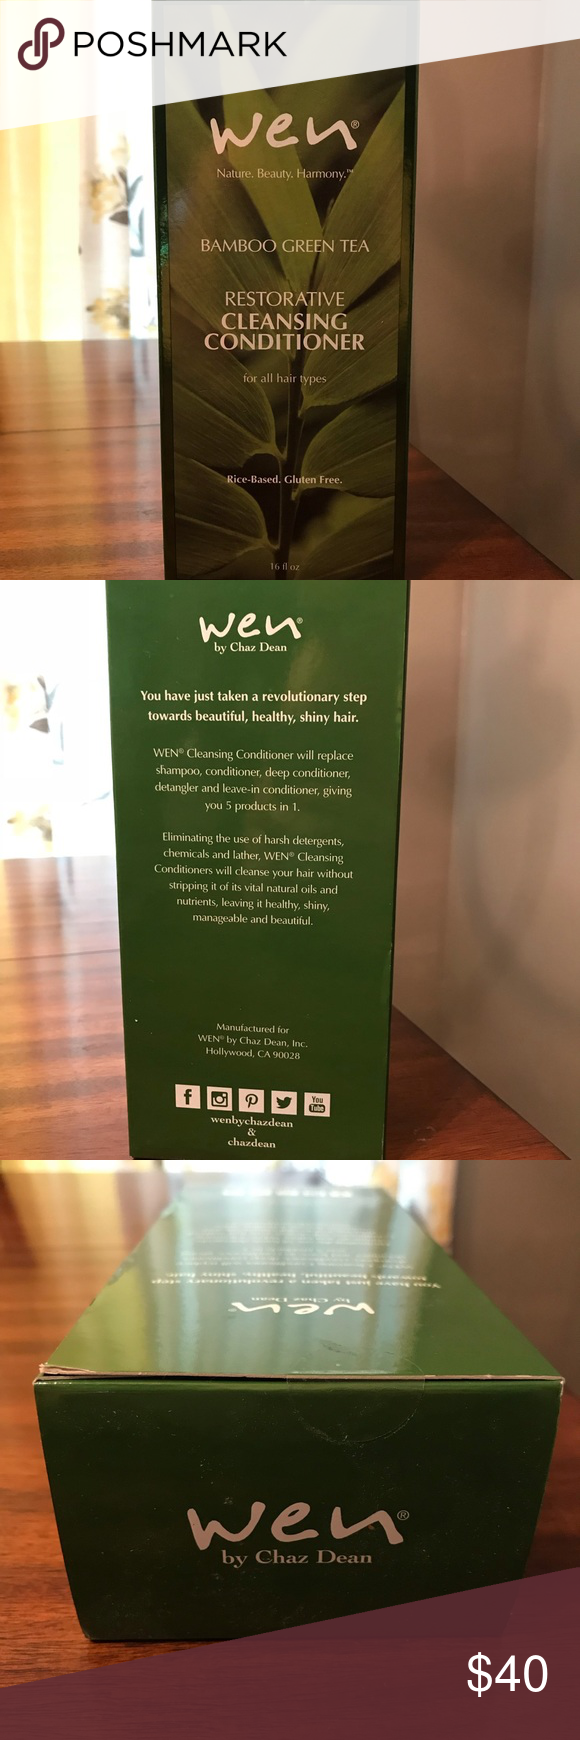 Wen cleansing conditioner, 16oz Cleansing conditioner